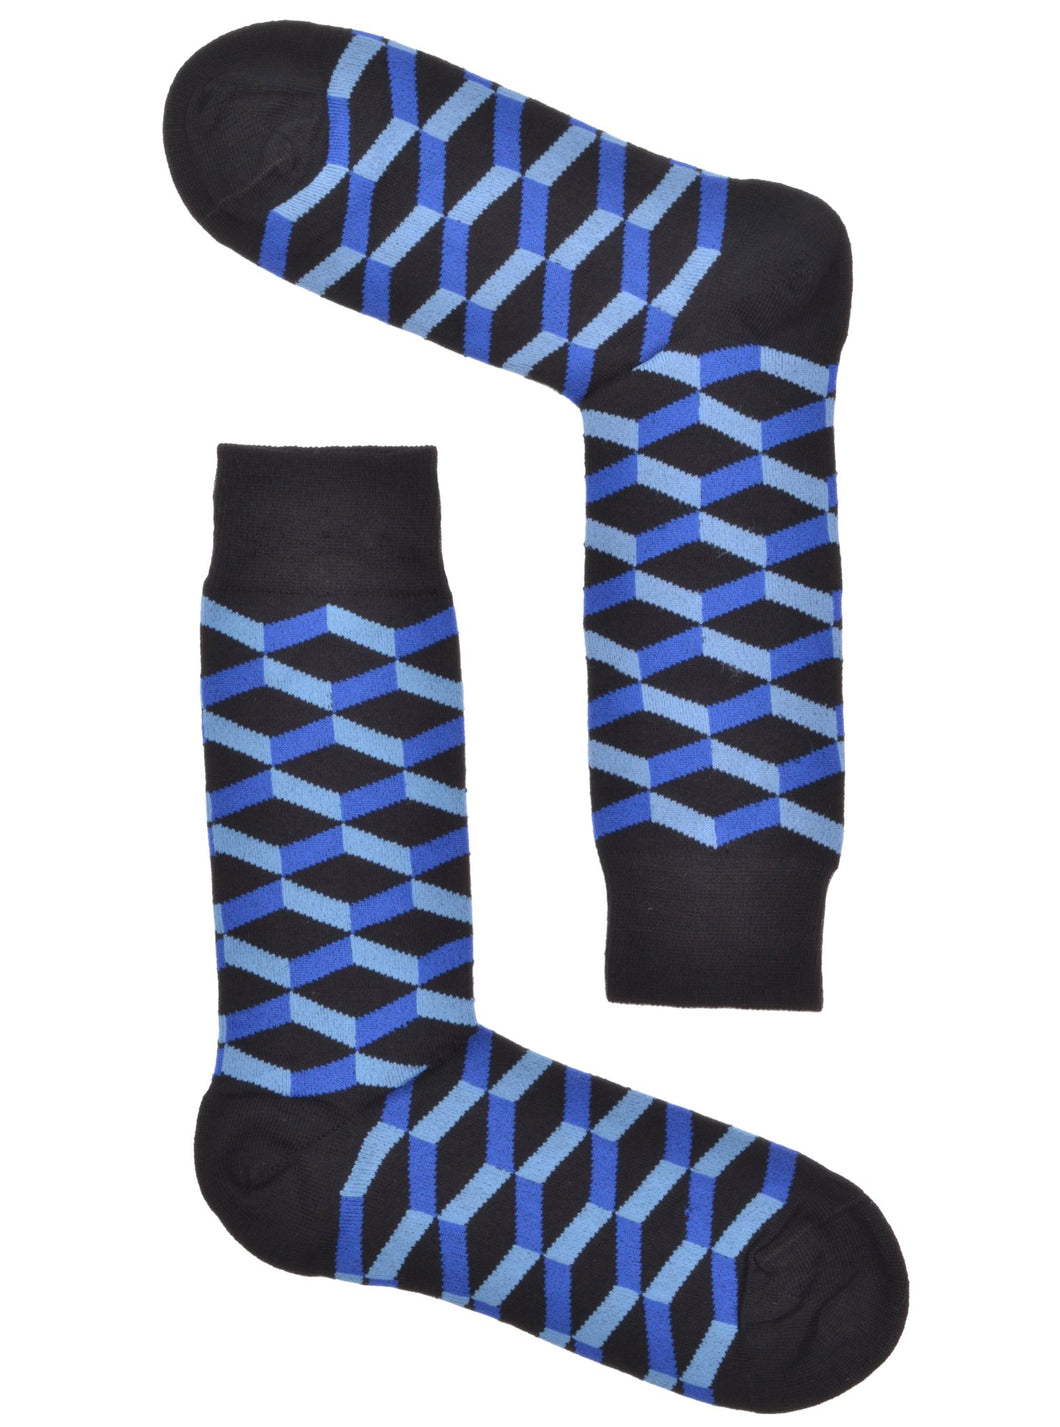 Blue Hex Socks